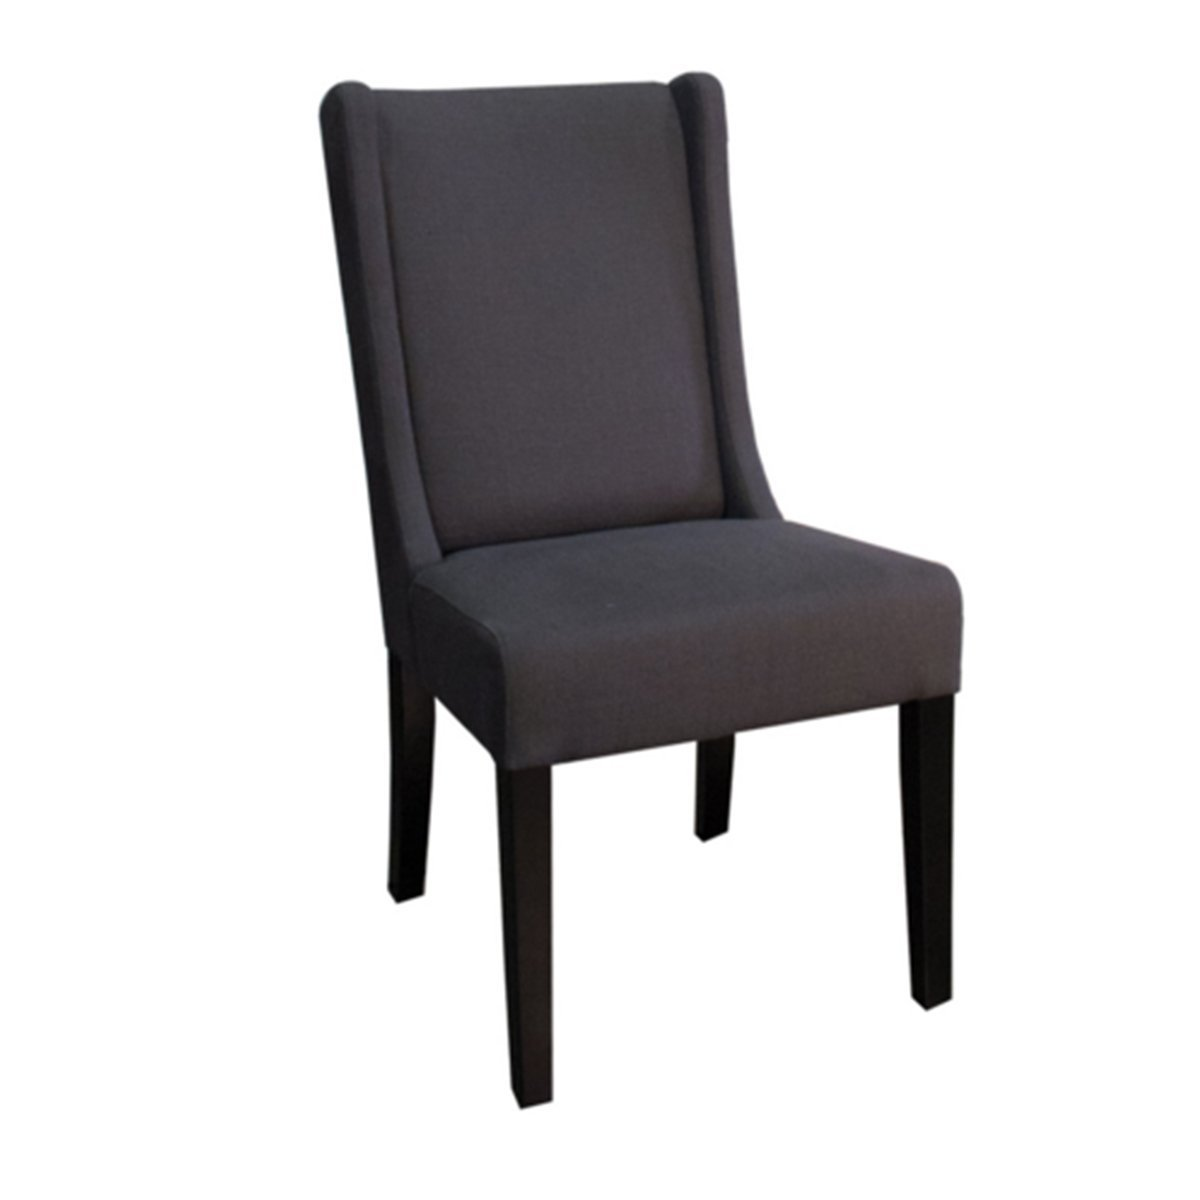 Non-Tufted High Back Chair - Graphite Fabric - Showhome Furniture